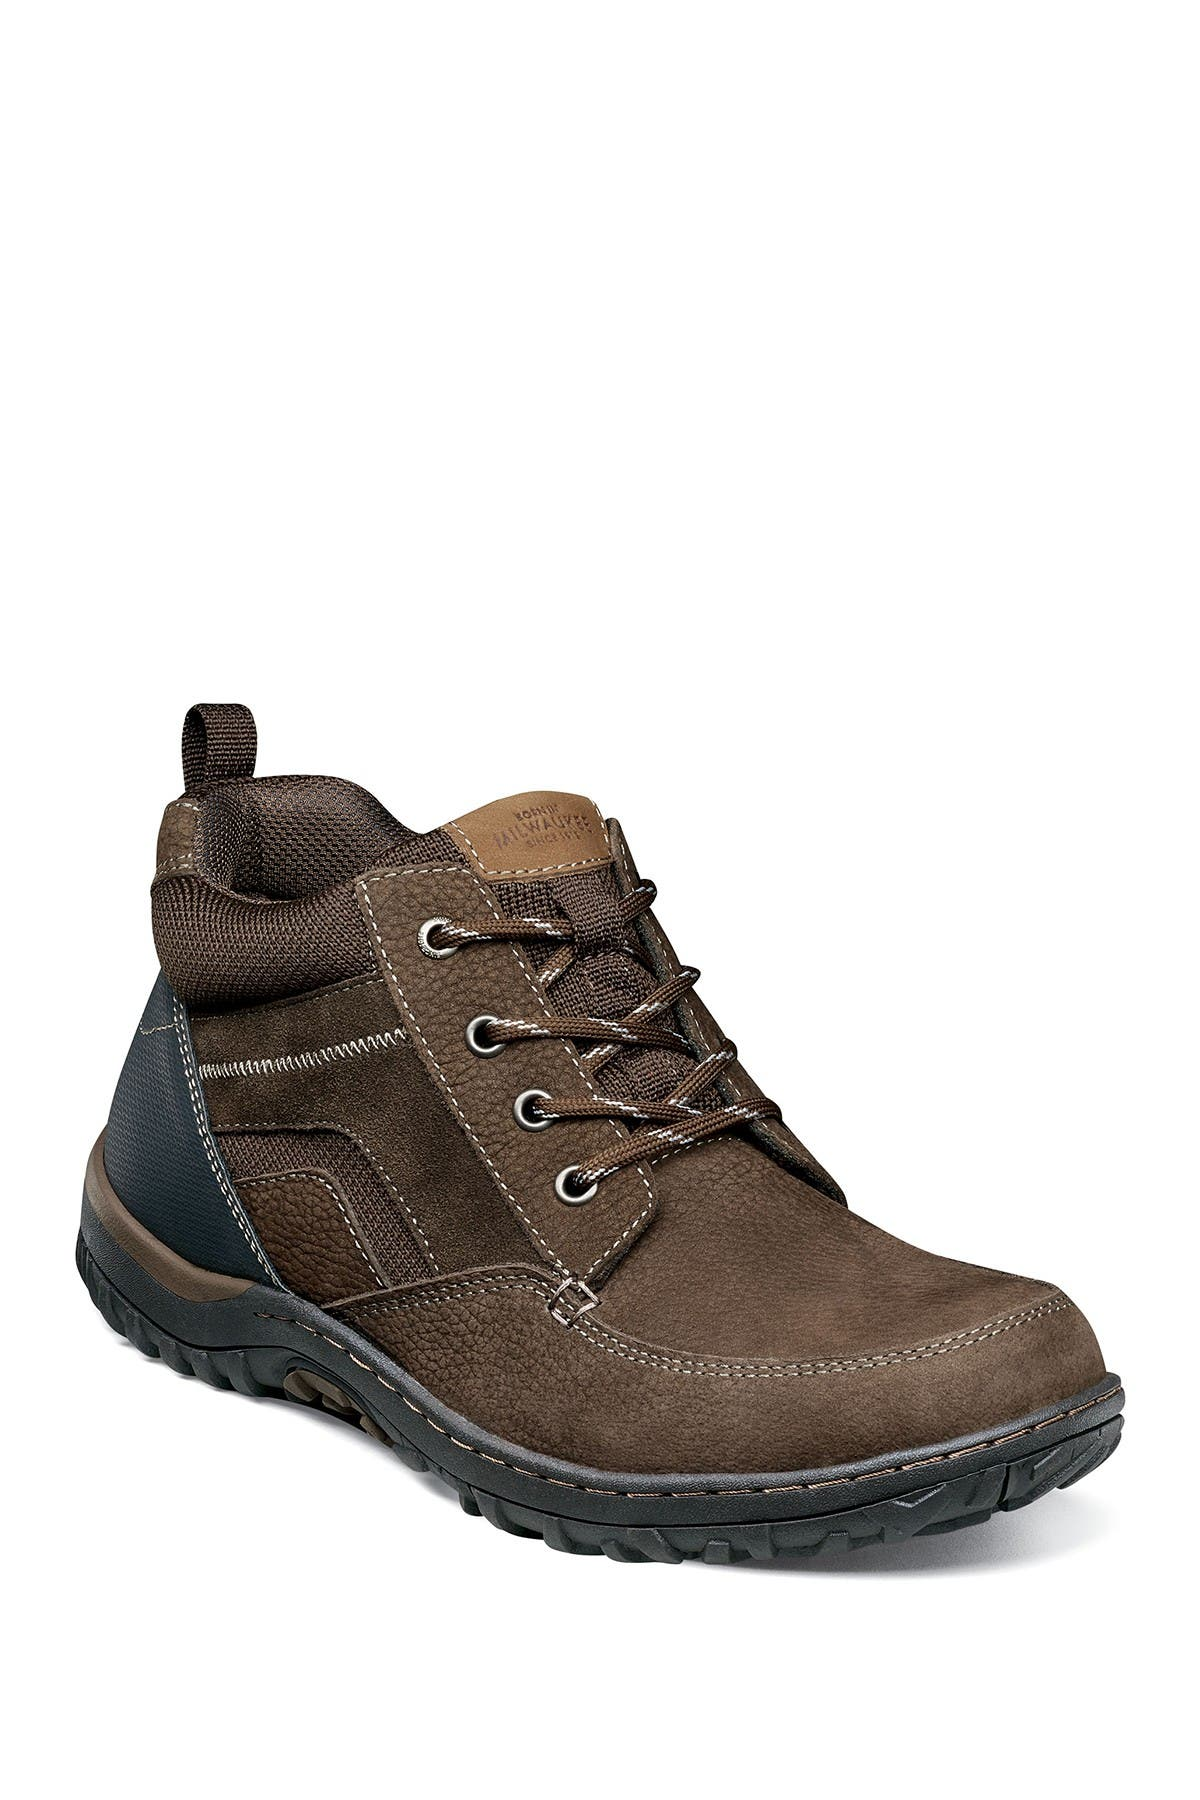 Image of NUNN BUSH Quest Moc Toe Chukka Boot - Wide Width Available